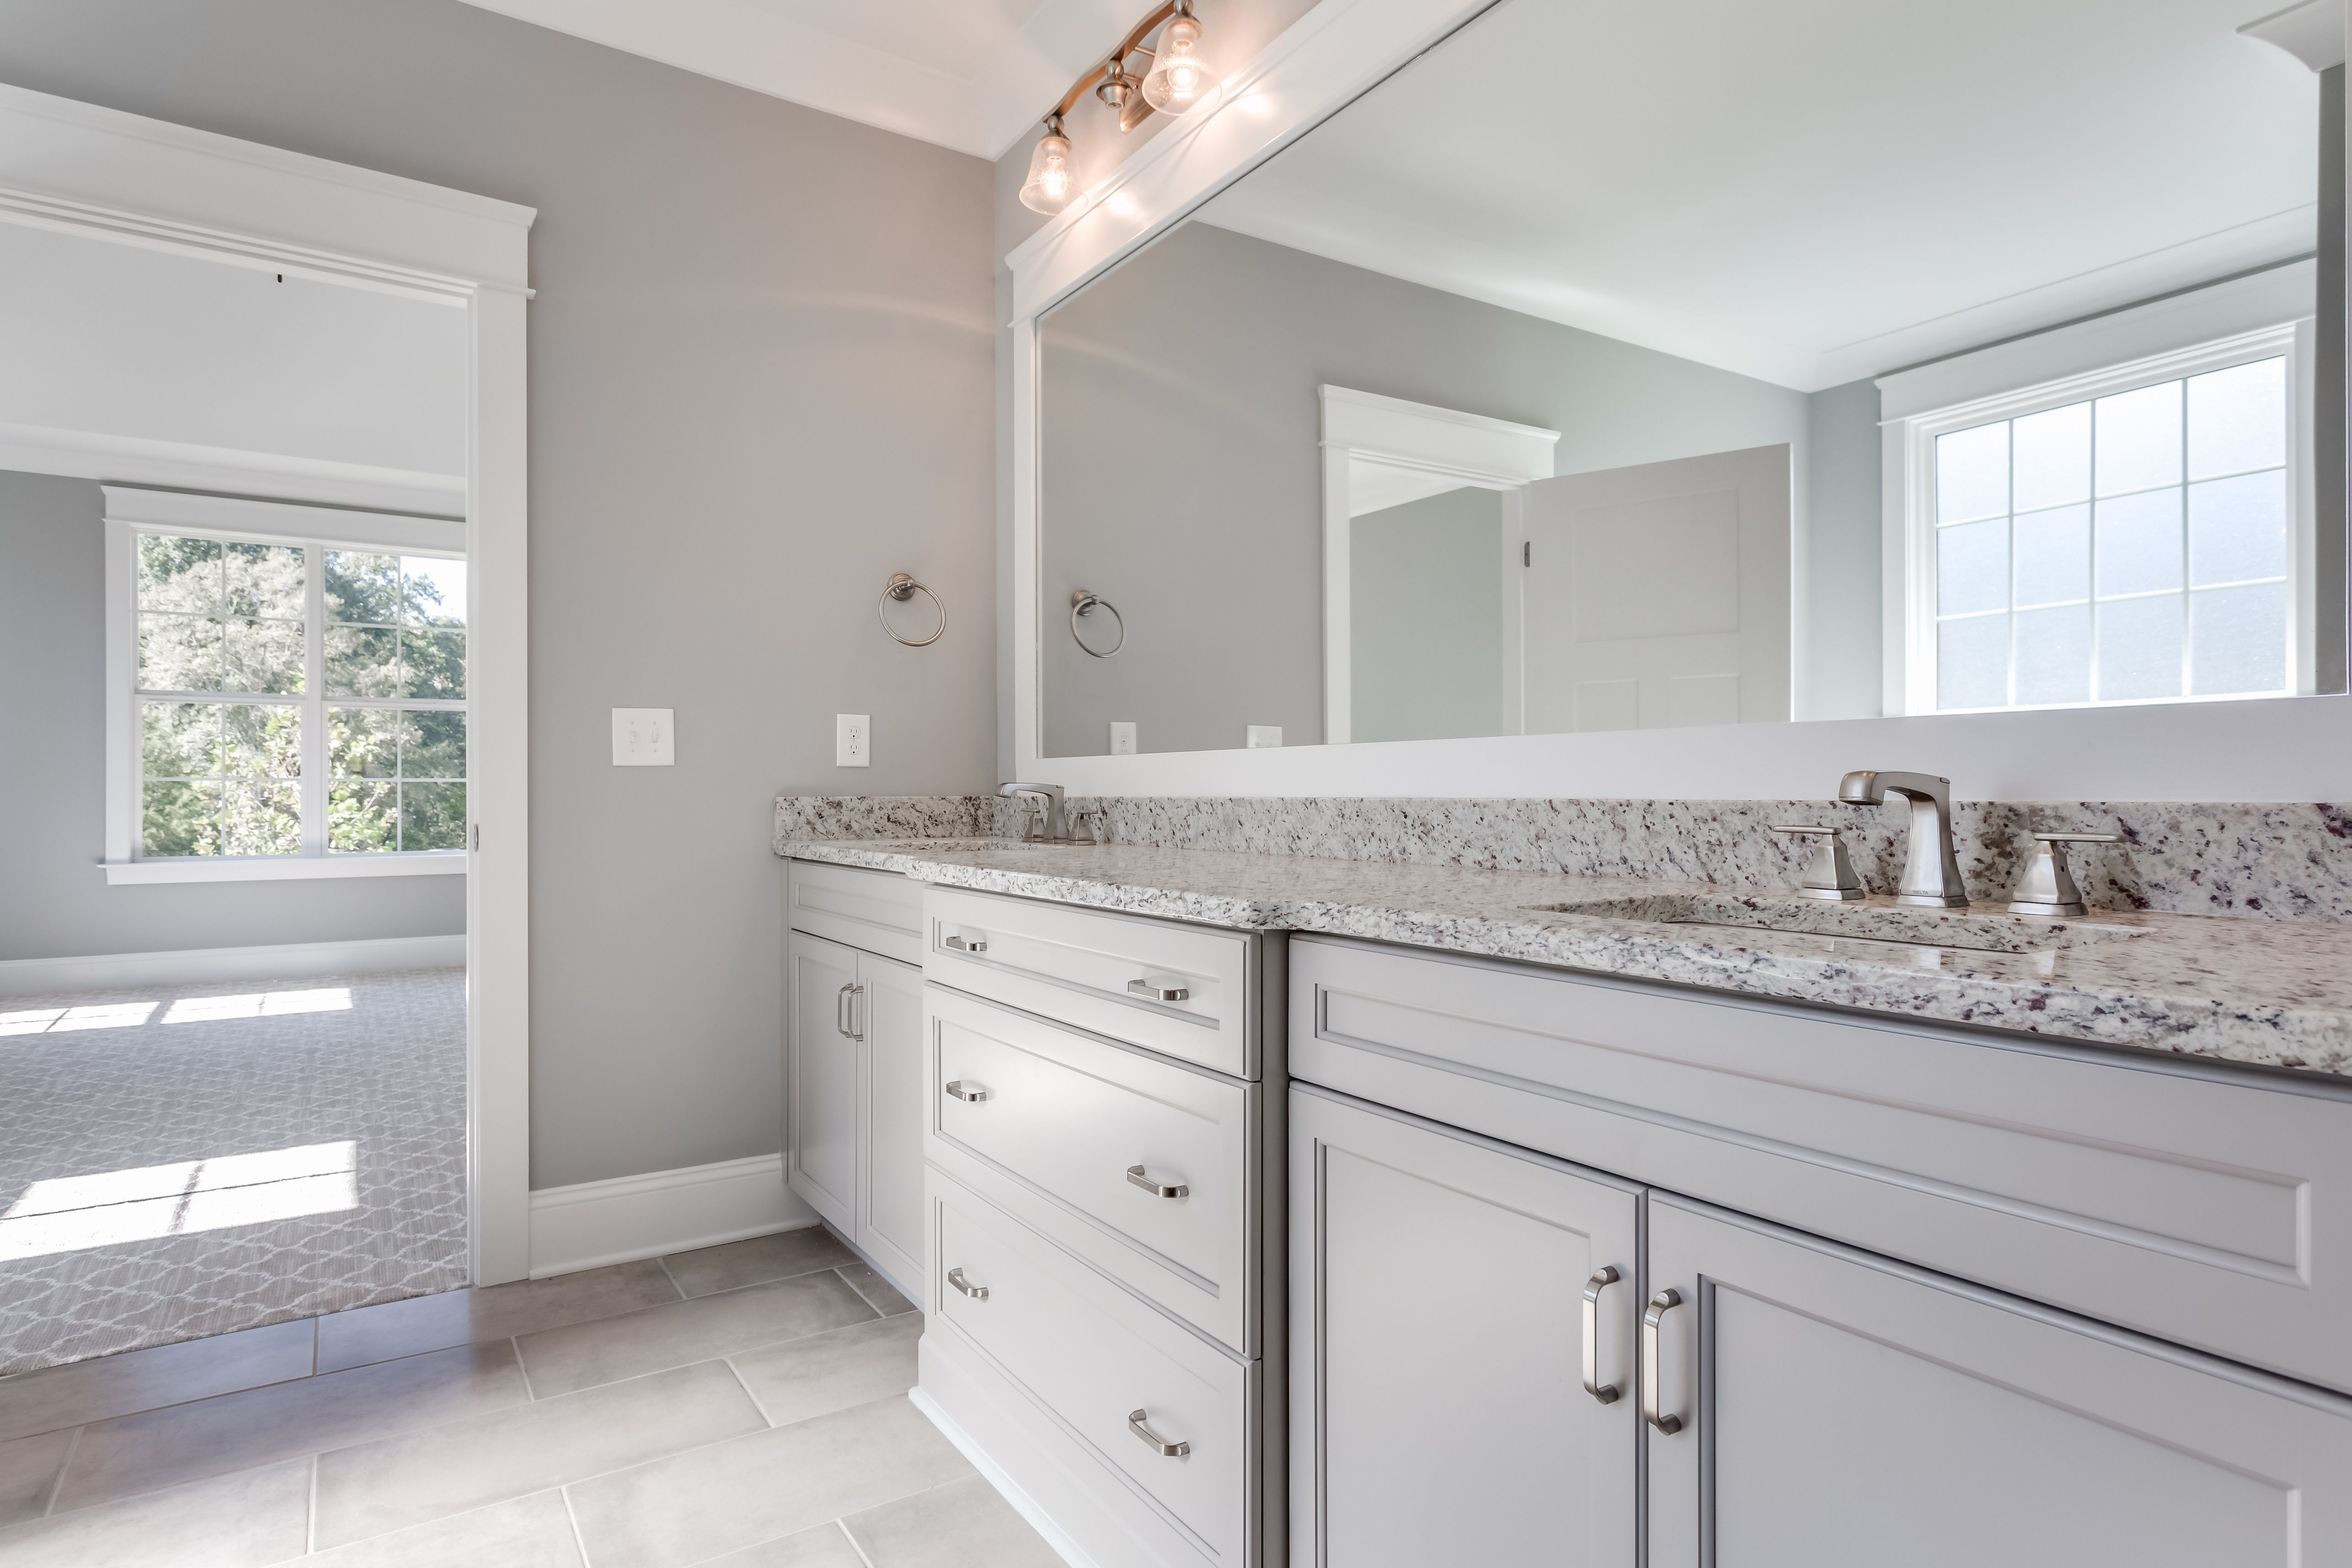 visualize your bathroom design with this online visualizer ...